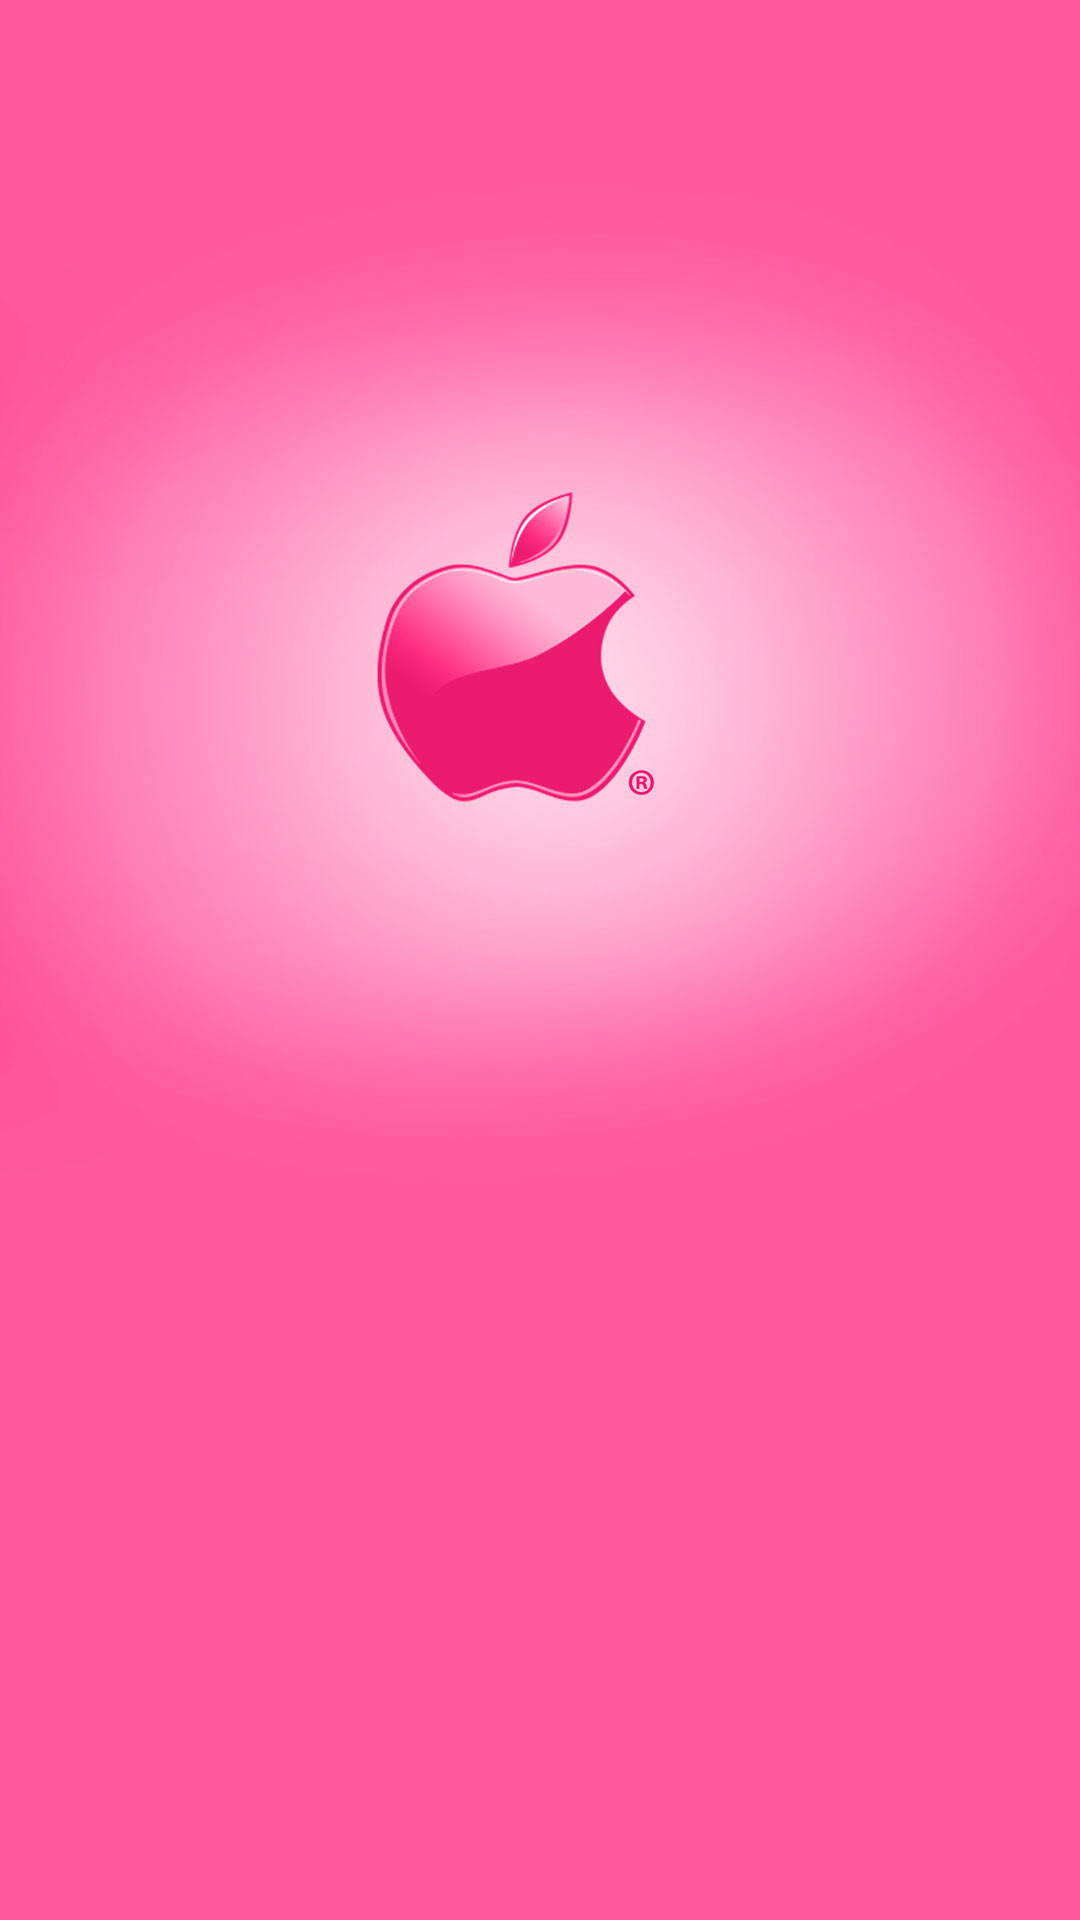 1080x1920 Pink iPhone 6 Plus wallpaper for girls